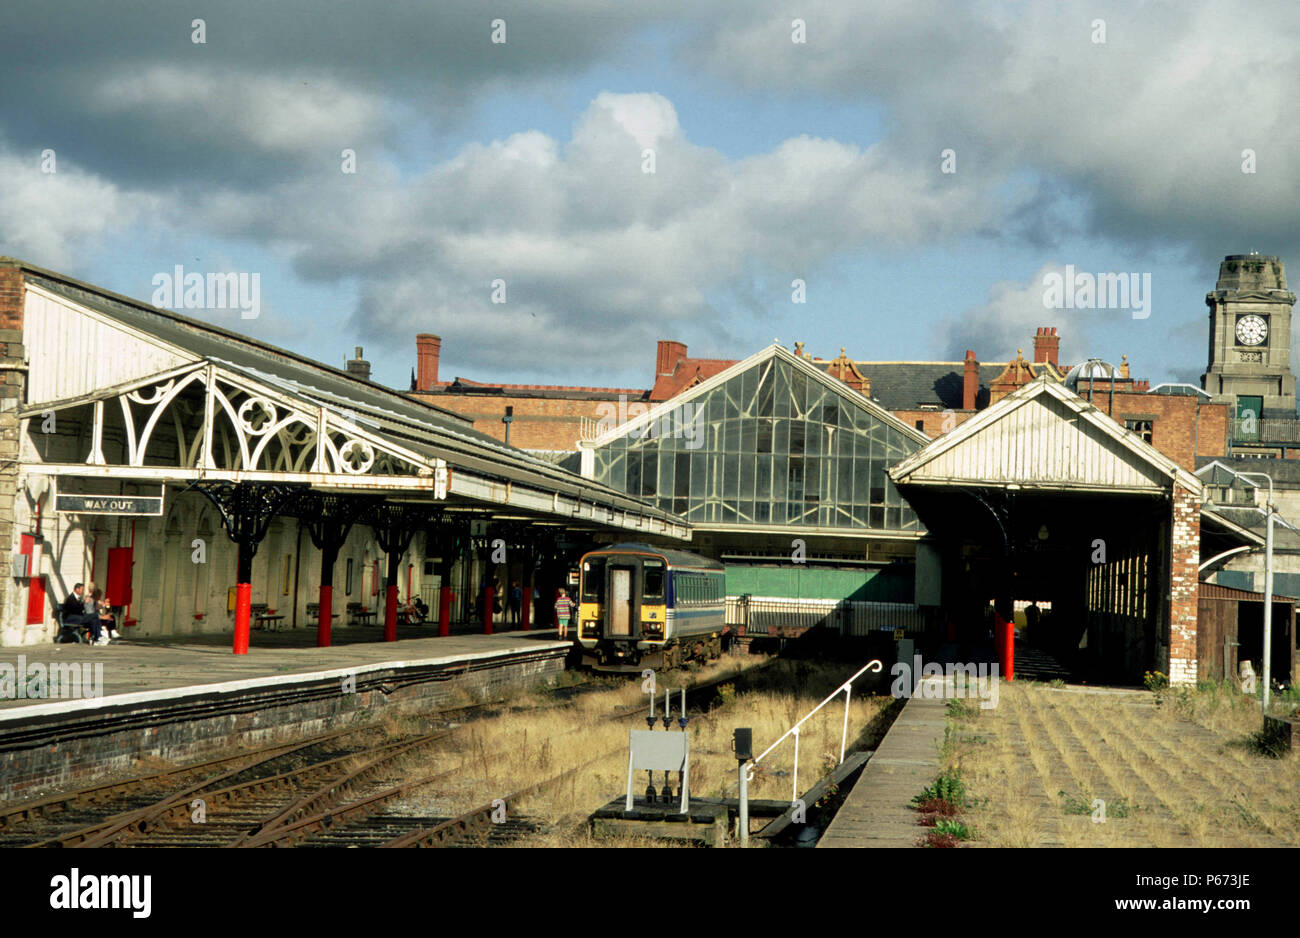 Aberystwyth Station prior to restoration with a single car Class 153 DMU. - Stock Image